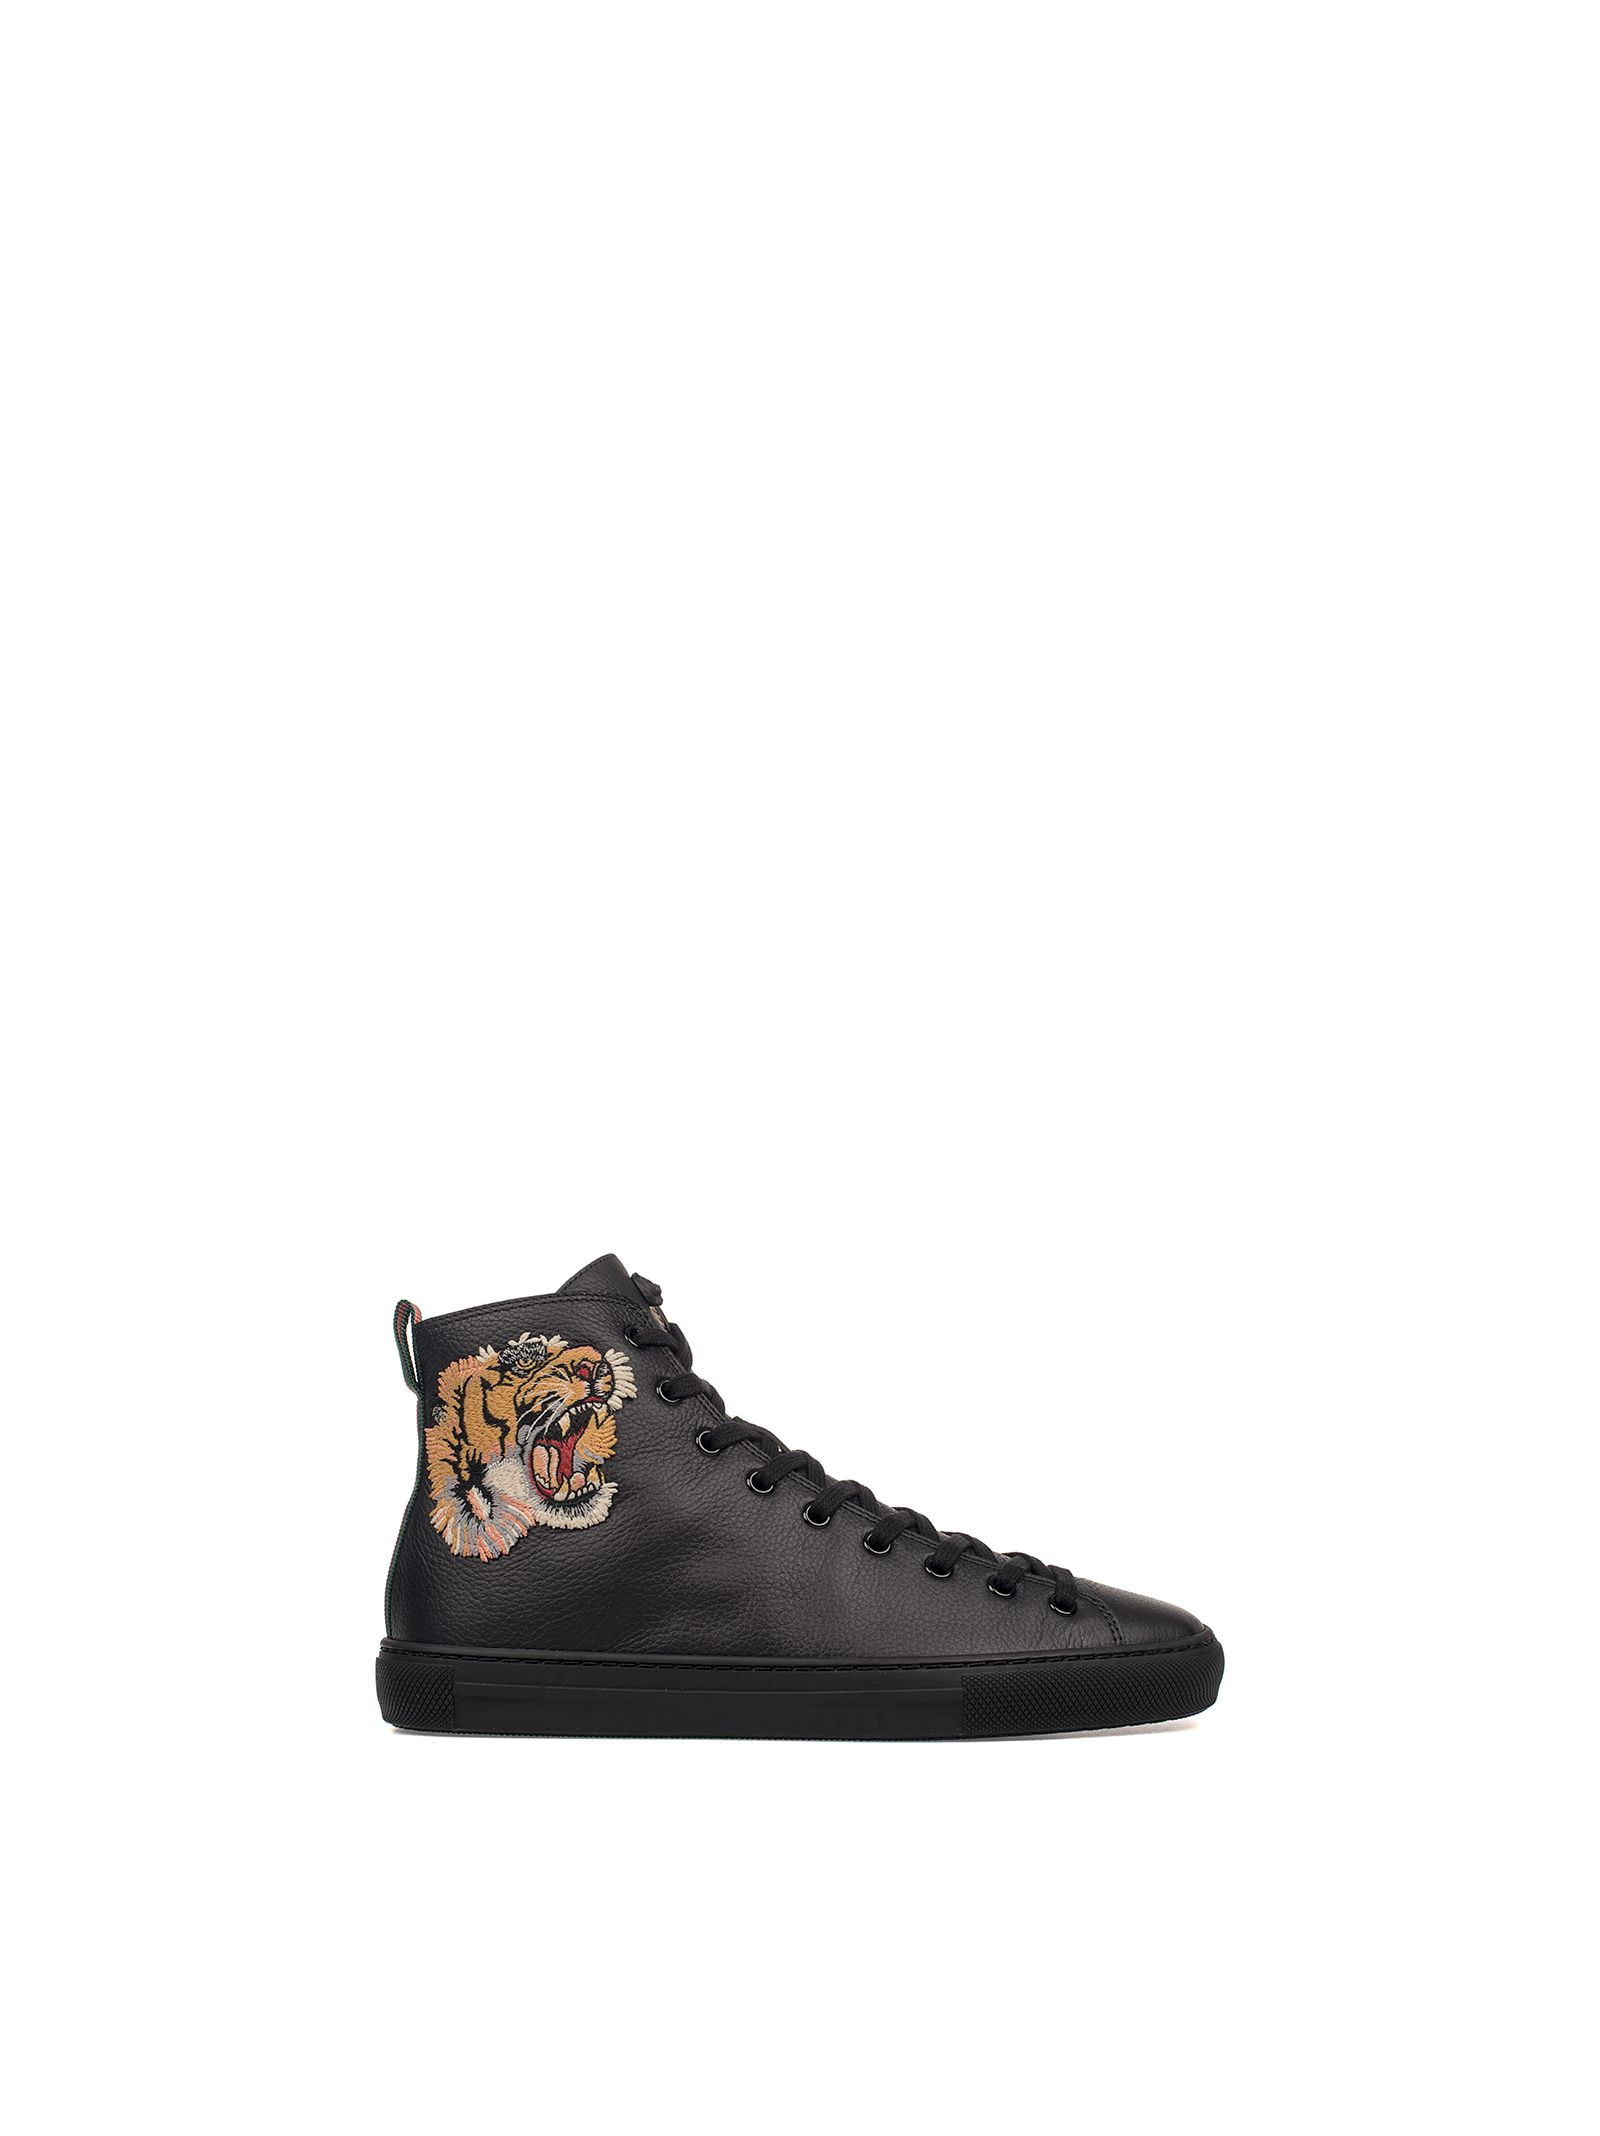 gucci male black tiger embroidery leather hightop sneakers